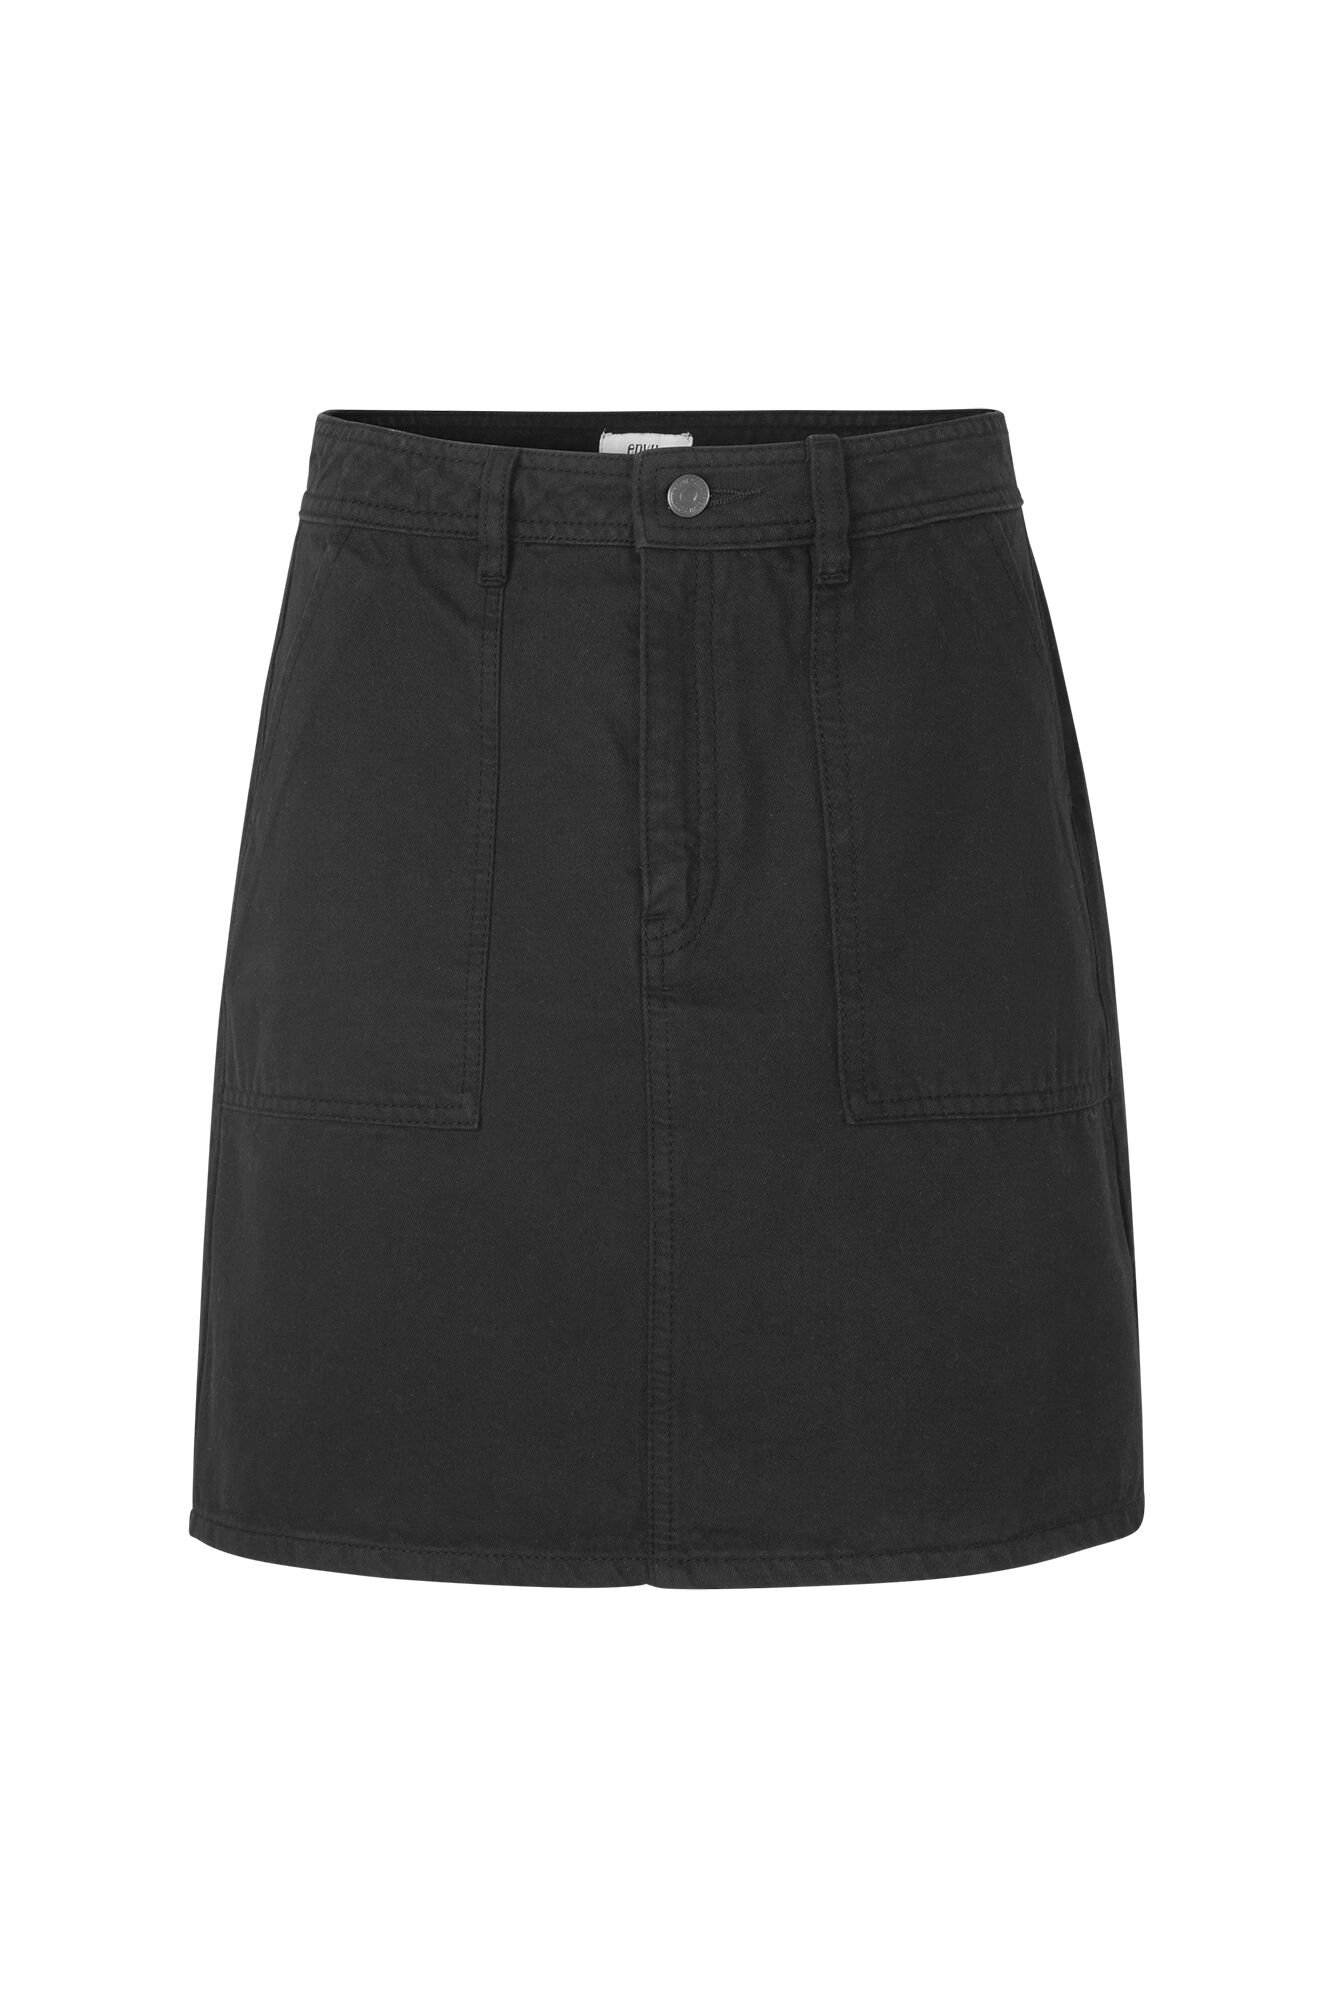 ENSEVILLA SKIRT 6458